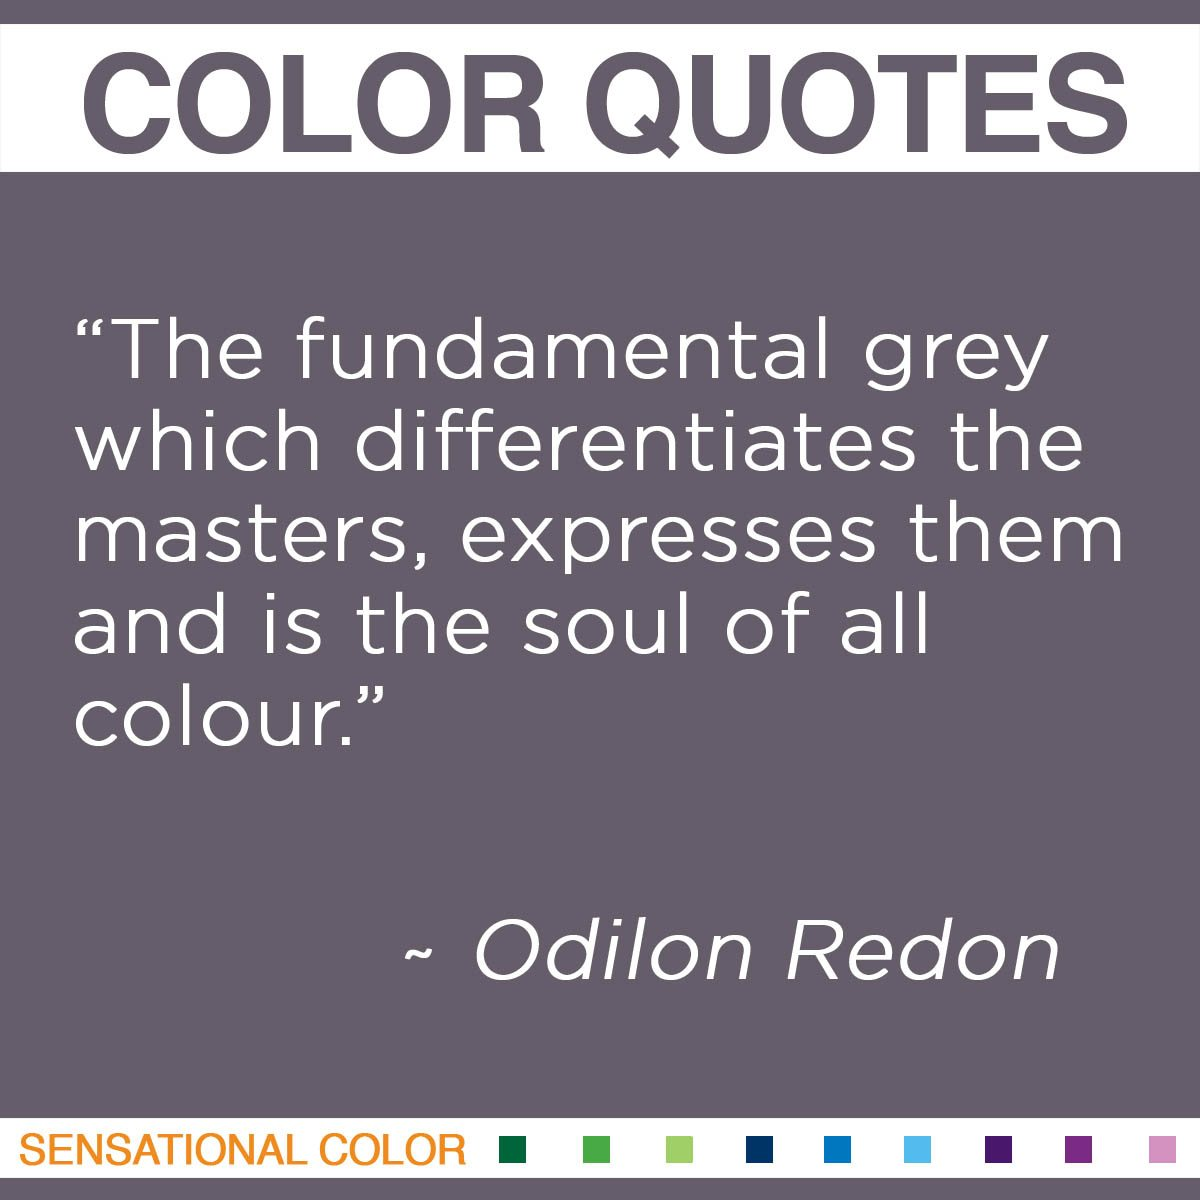 """The fundamental grey which differentiates the masters, expresses them and is the soul of all colour."" - Odilon Redon"